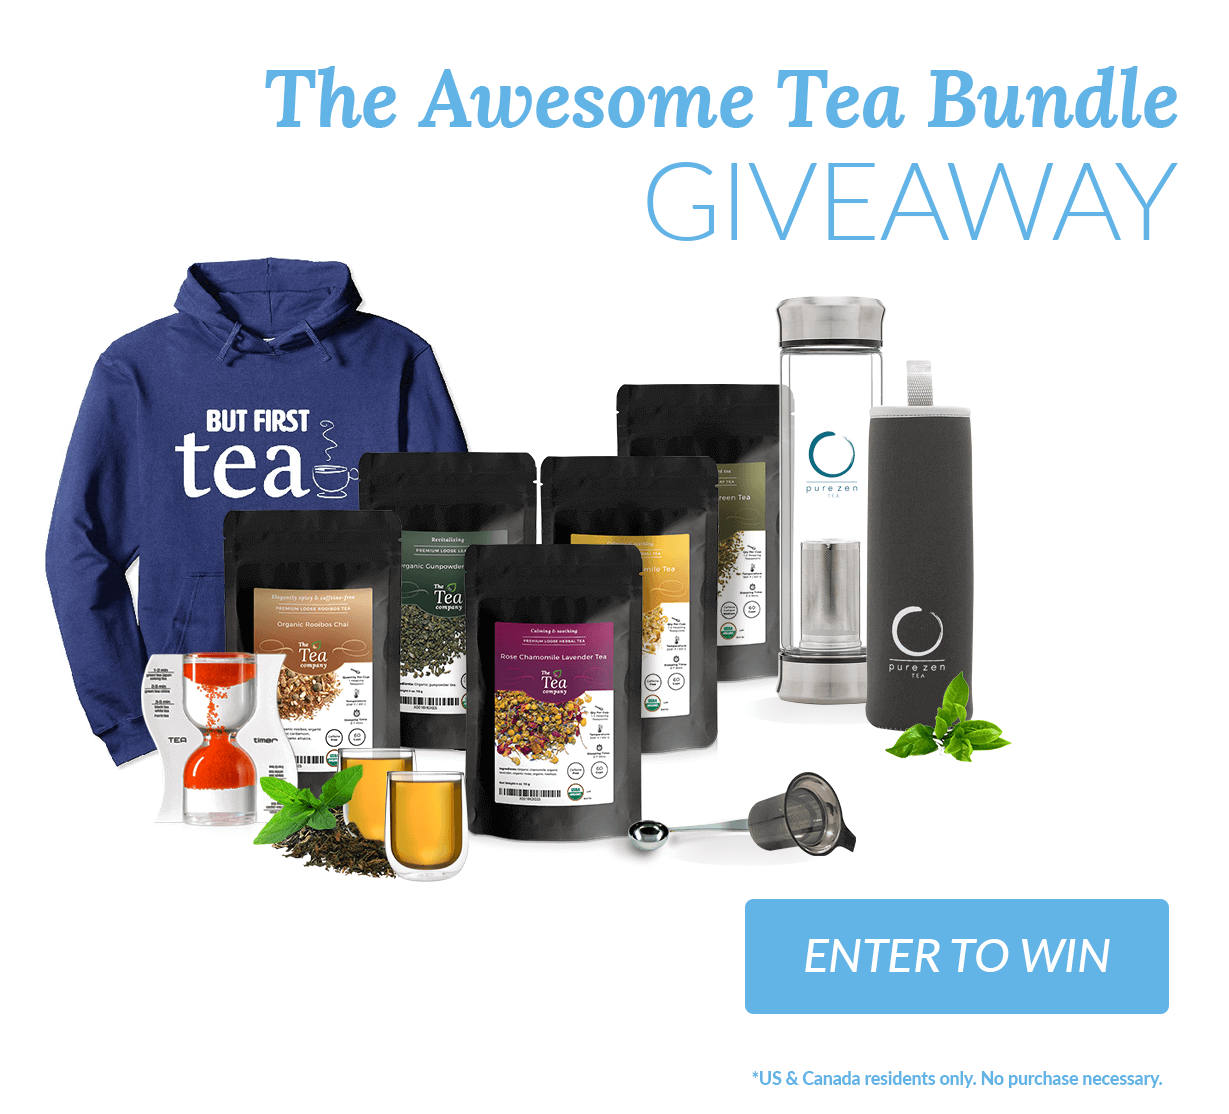 The Tea Company Awesome Tea Giveaway